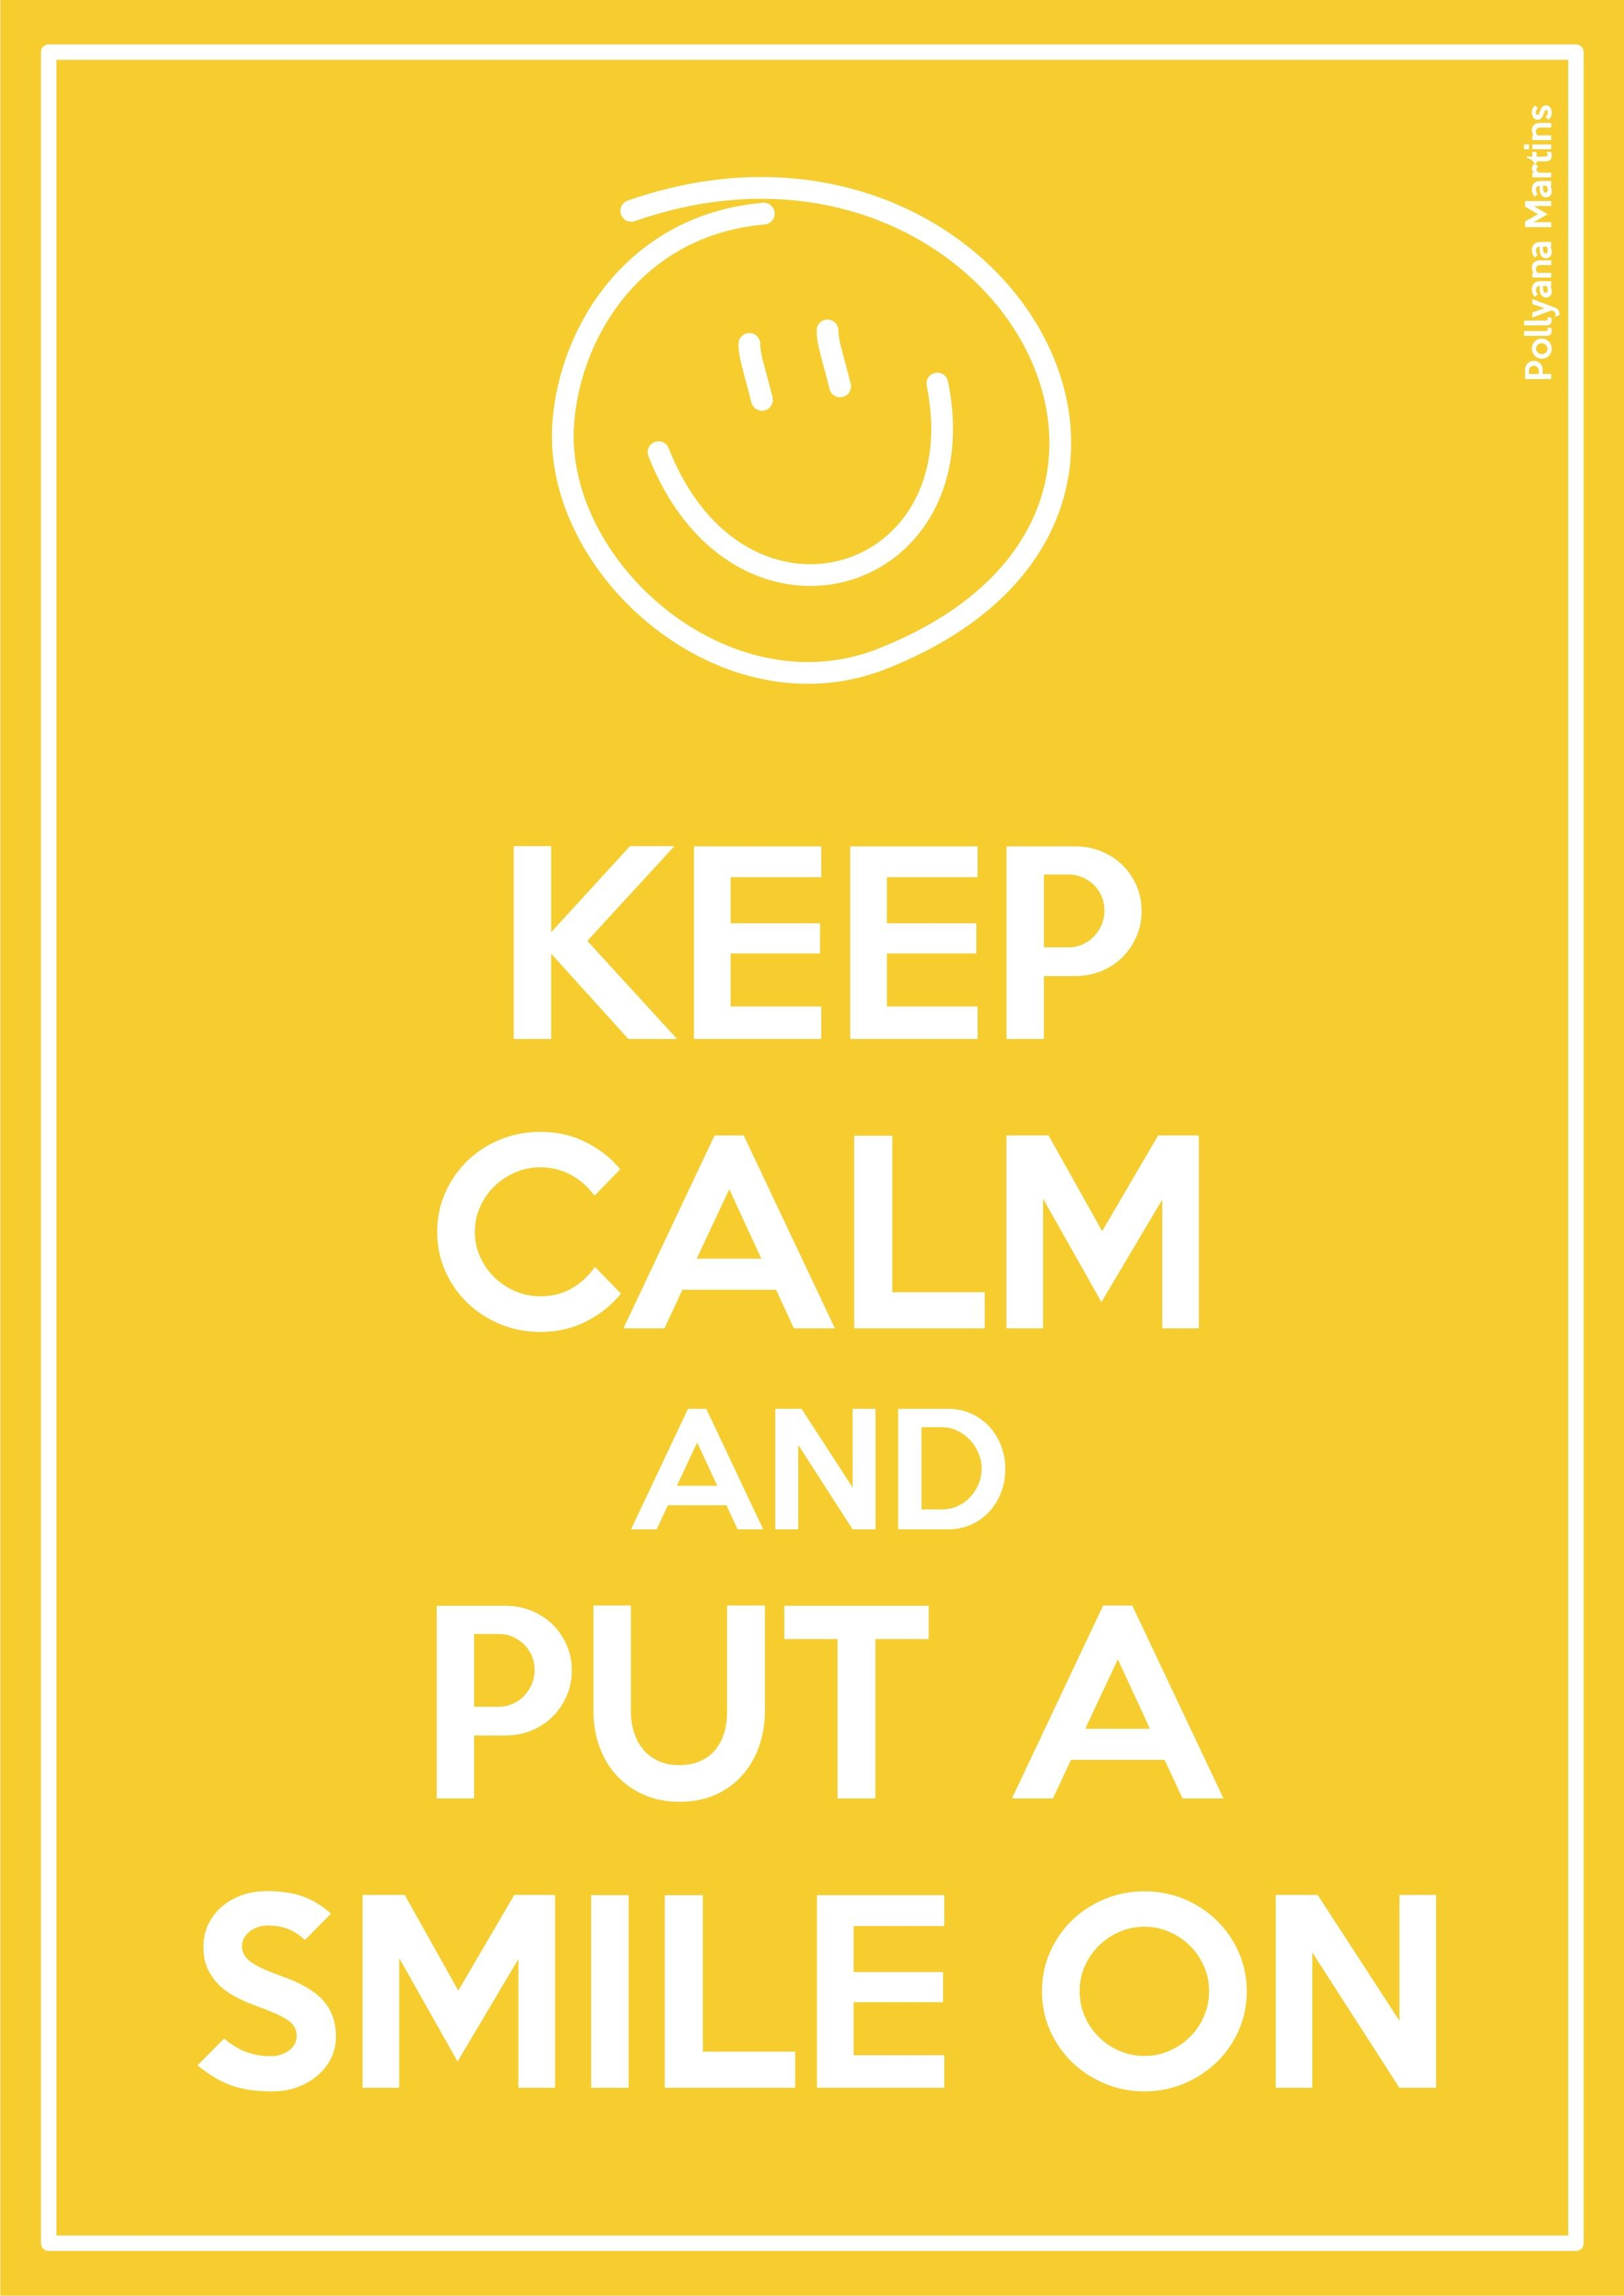 Pin By Iqra Shaikh On Emojis Smile Keep Calm Keep Smiling